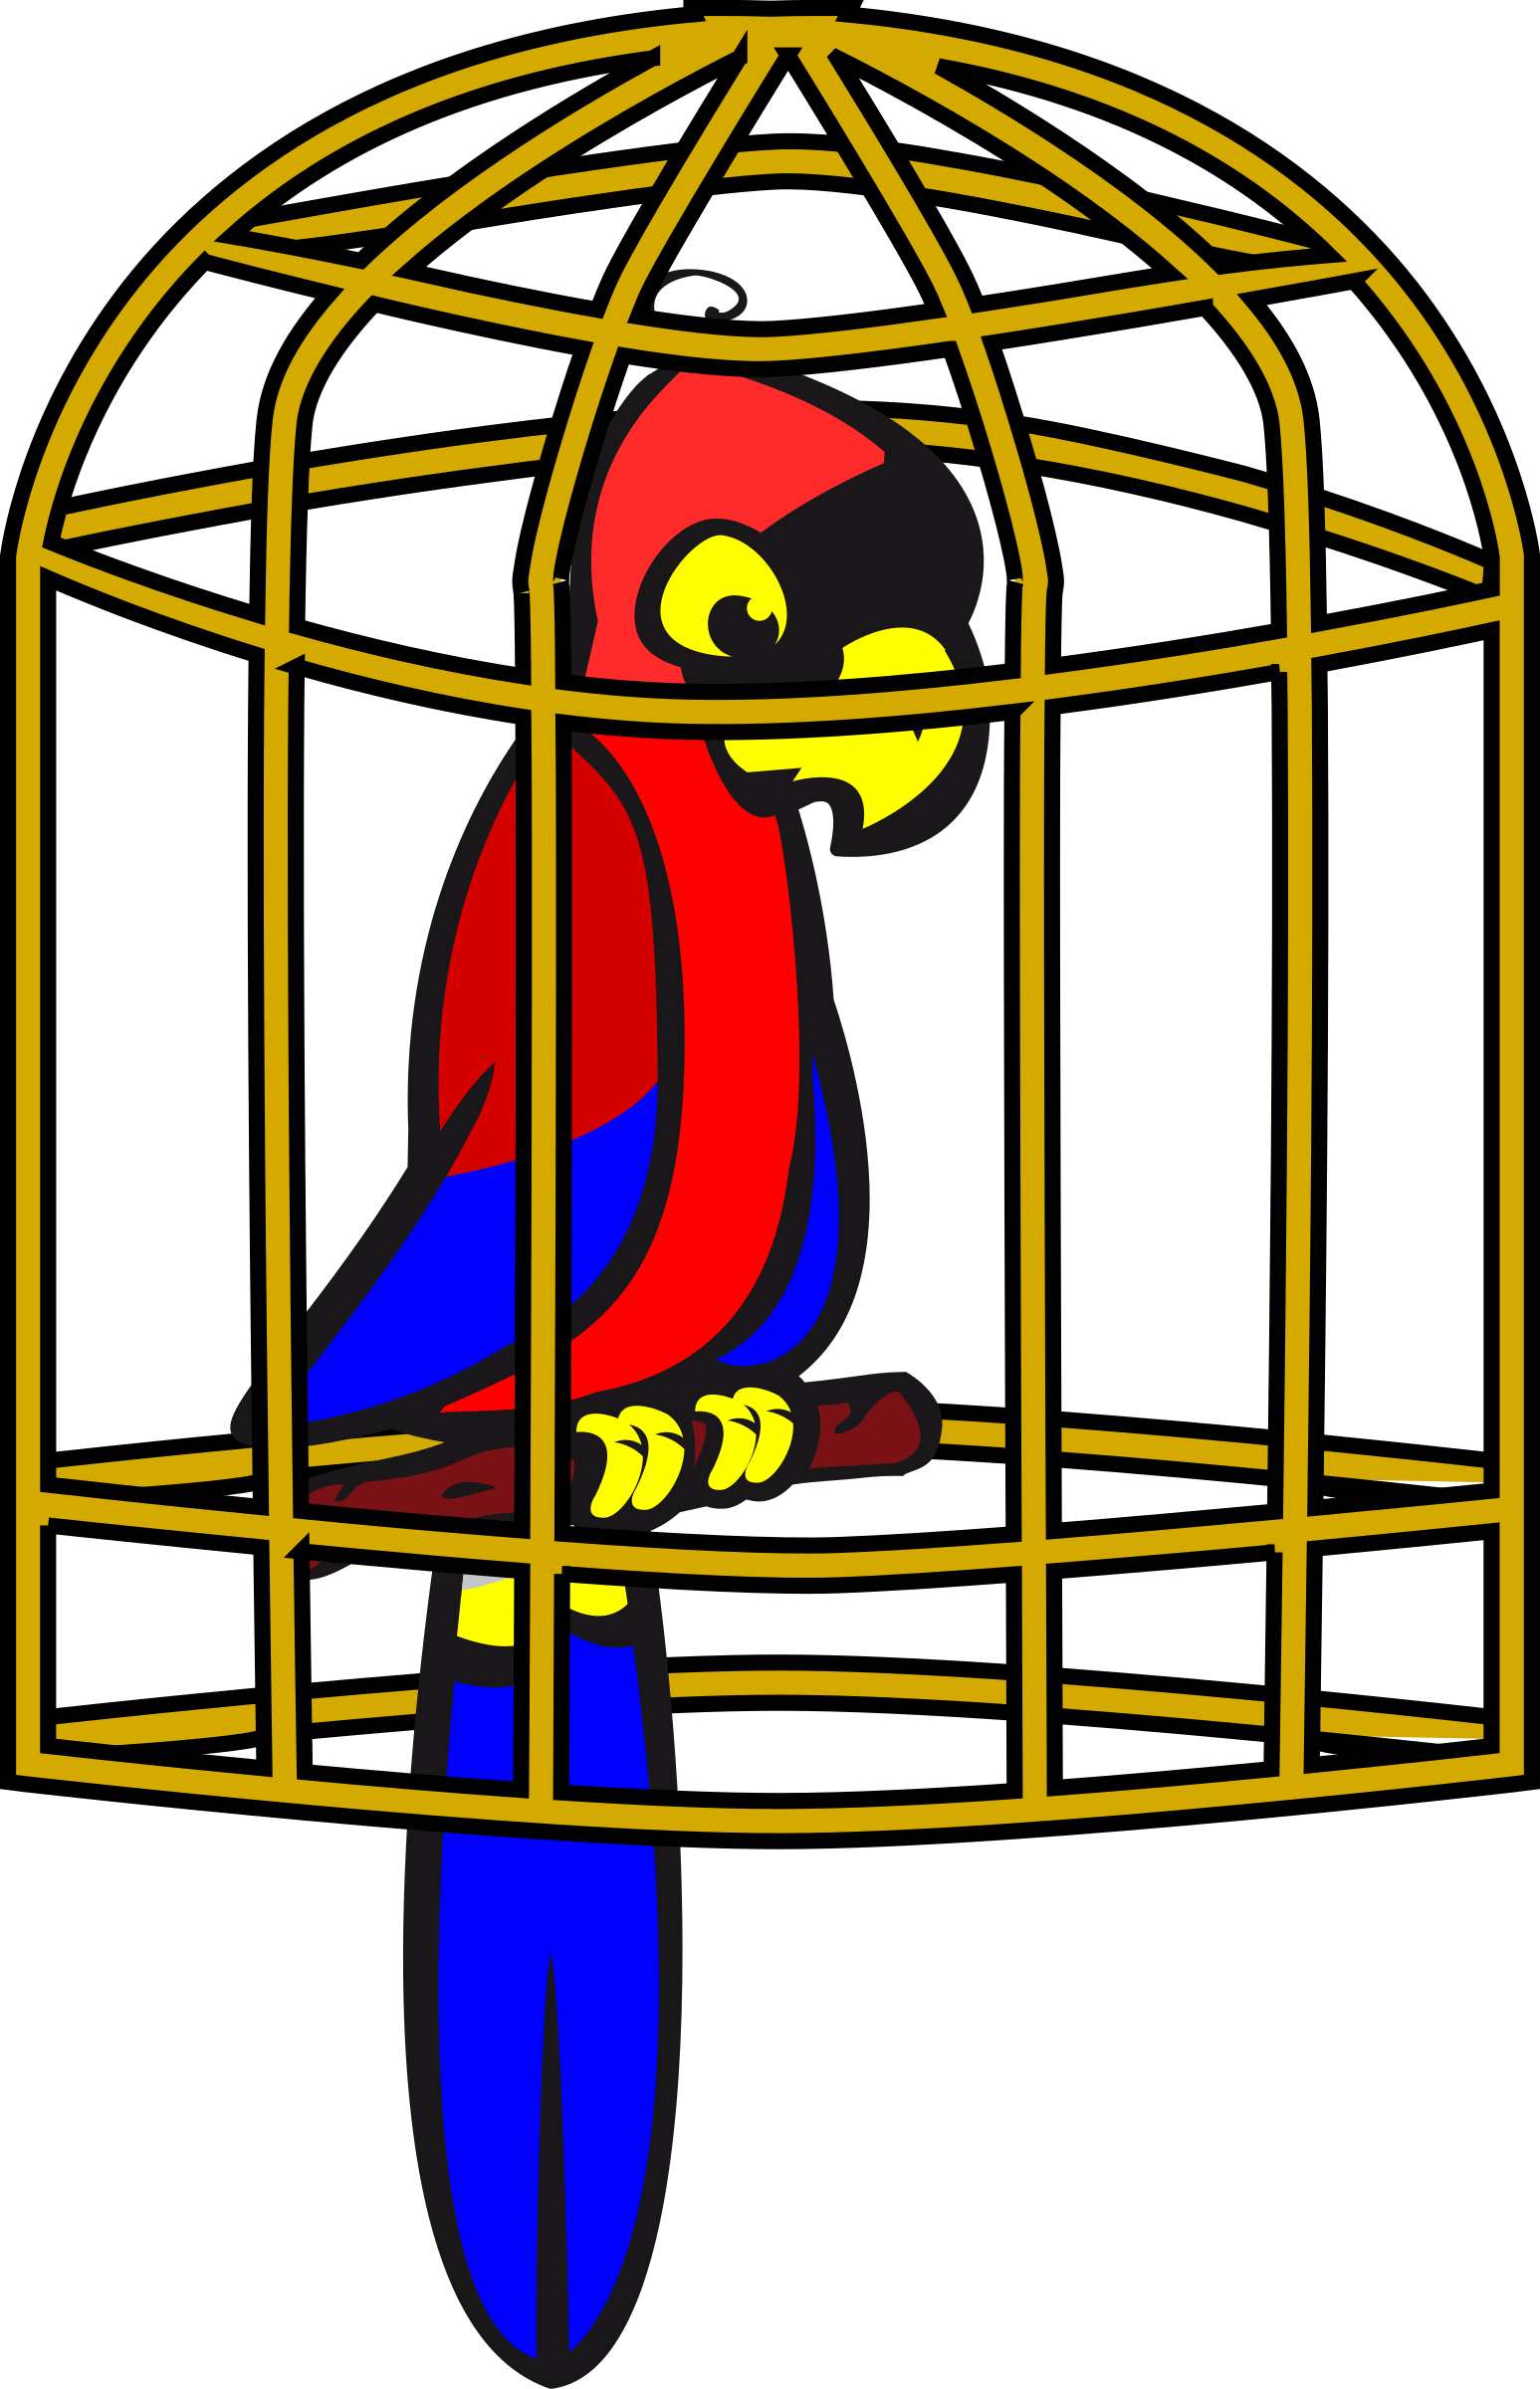 Parrot in a big. Cage clipart animal cage